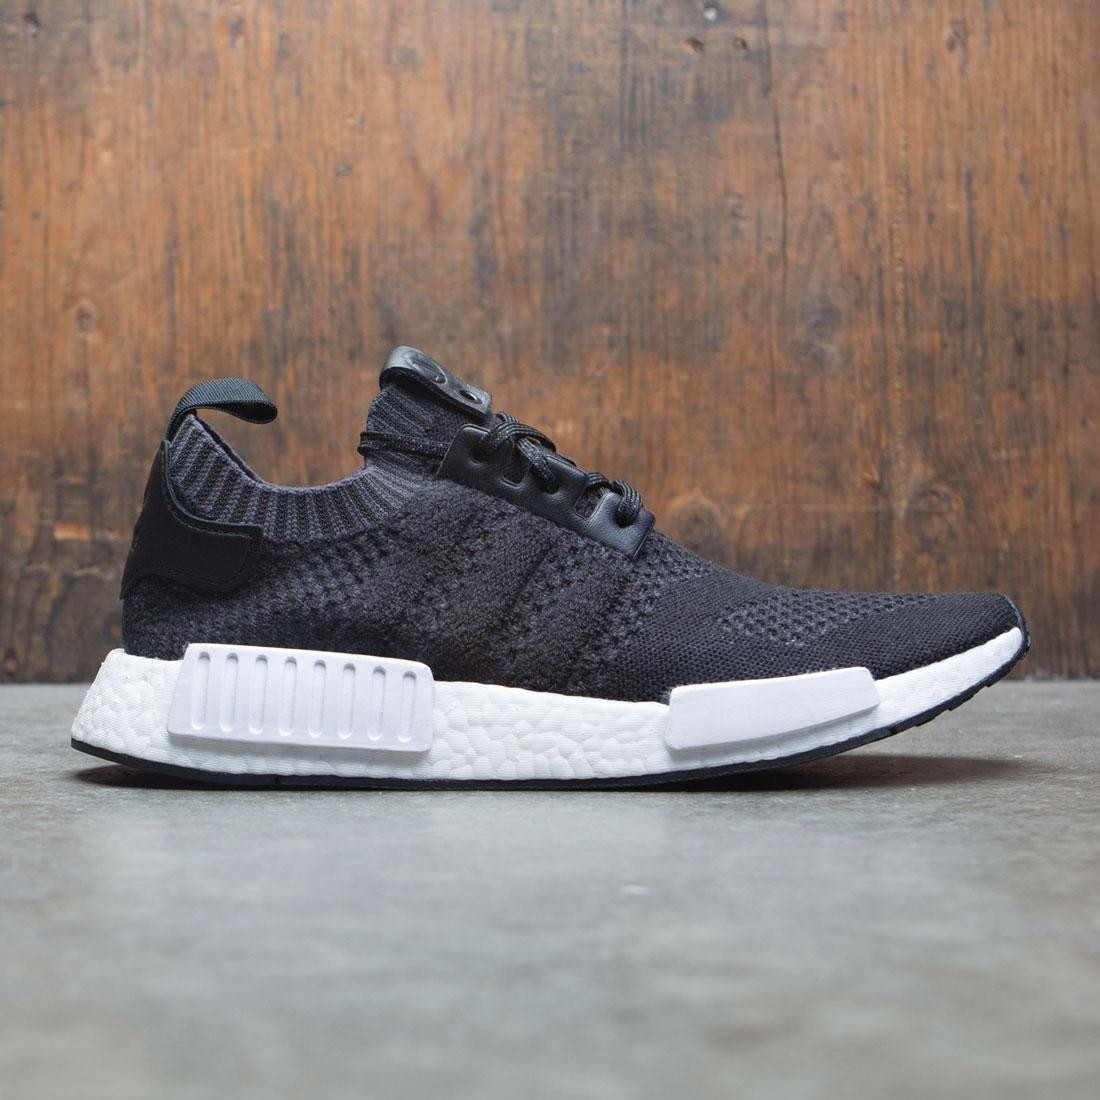 c4c39086dcb46 Adidas Consortium x A Ma Maniere x Invincible Men NMD R1 Sneaker Exchange  black night grey